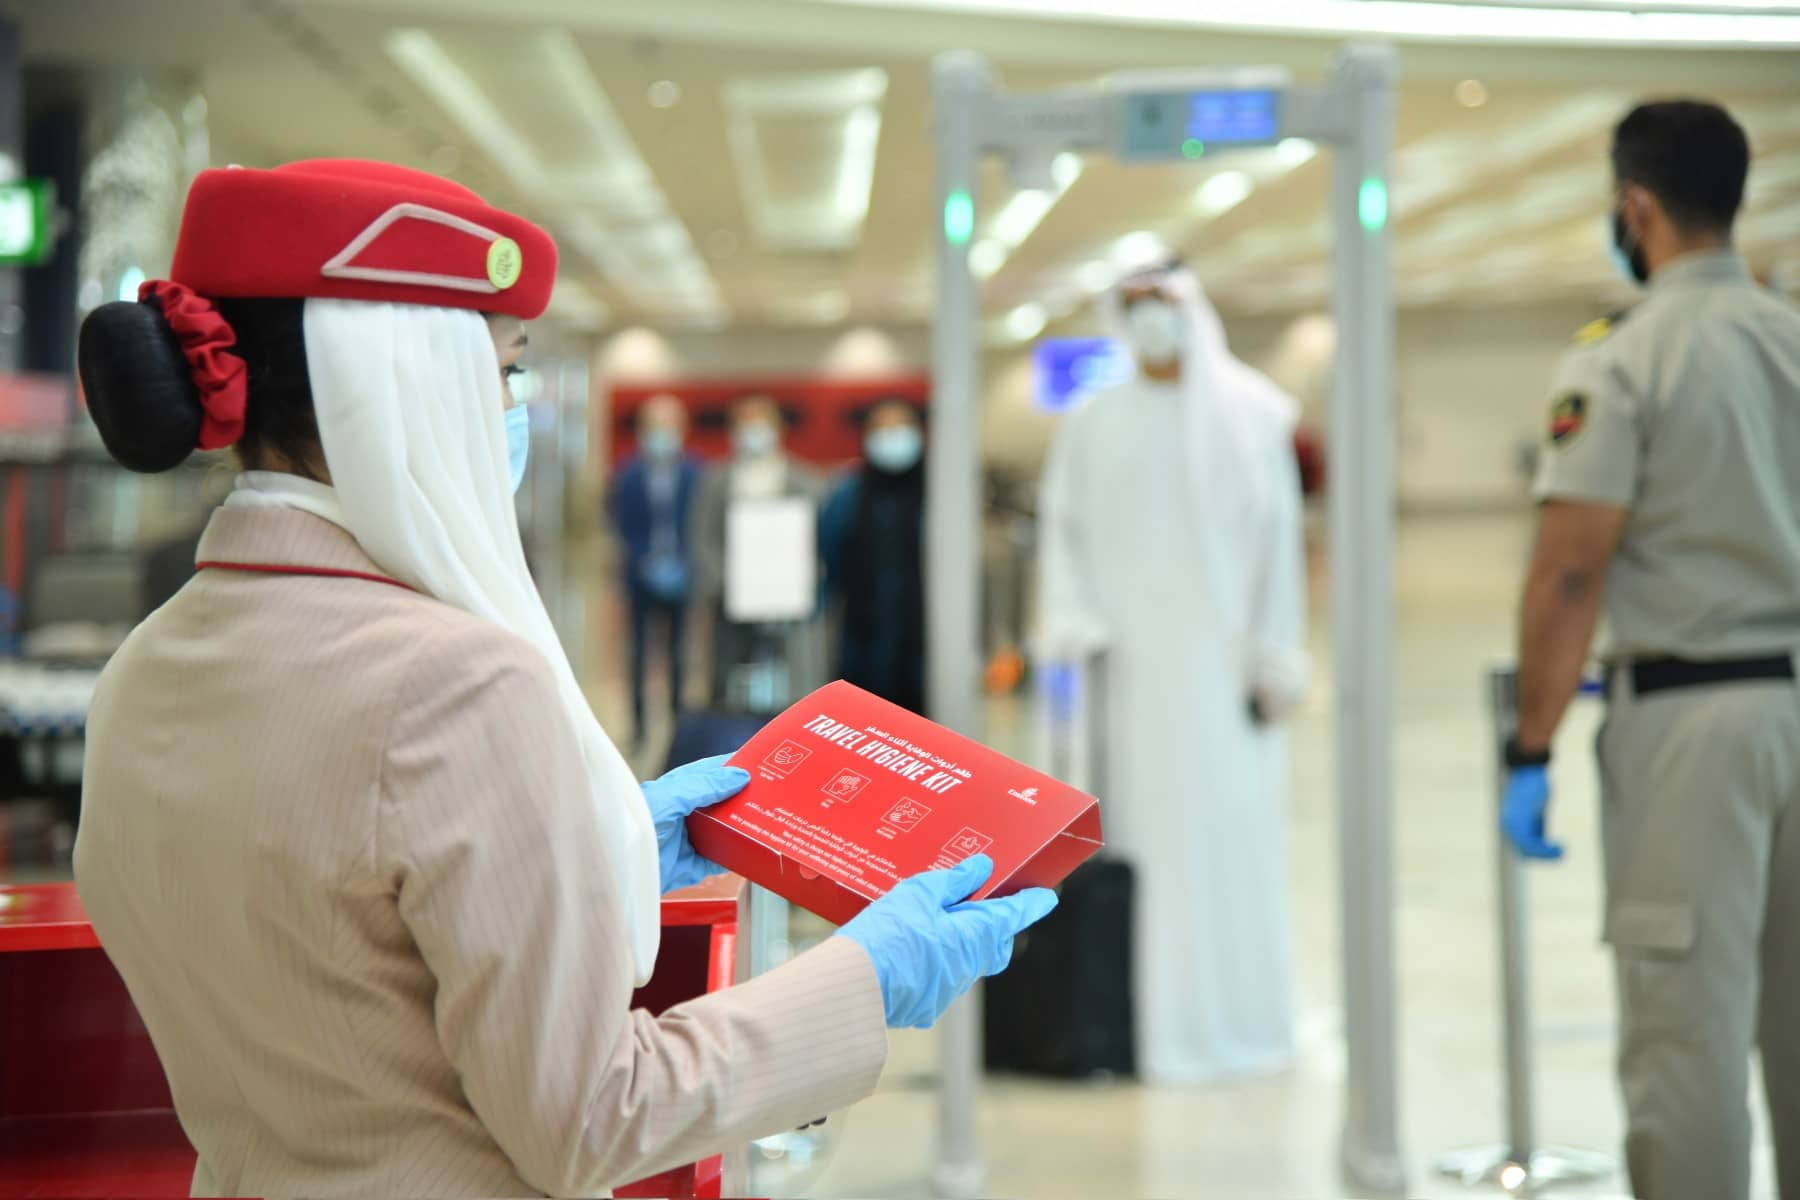 Emirates dubai airport staff holding a red package for a passenger